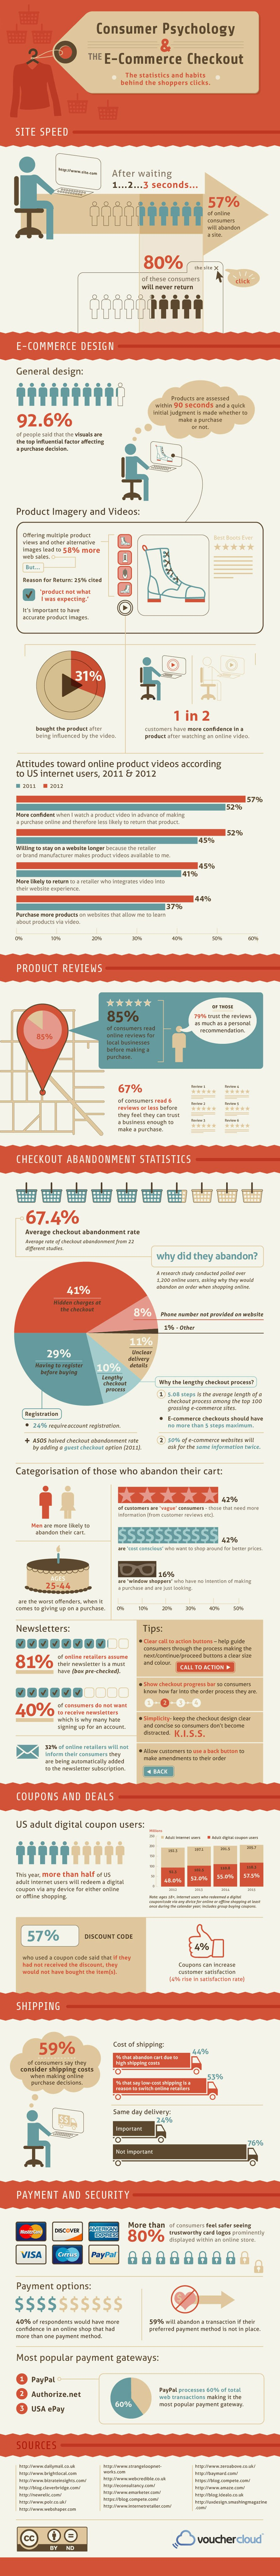 E-Commerce Consumer Psychology Infographic